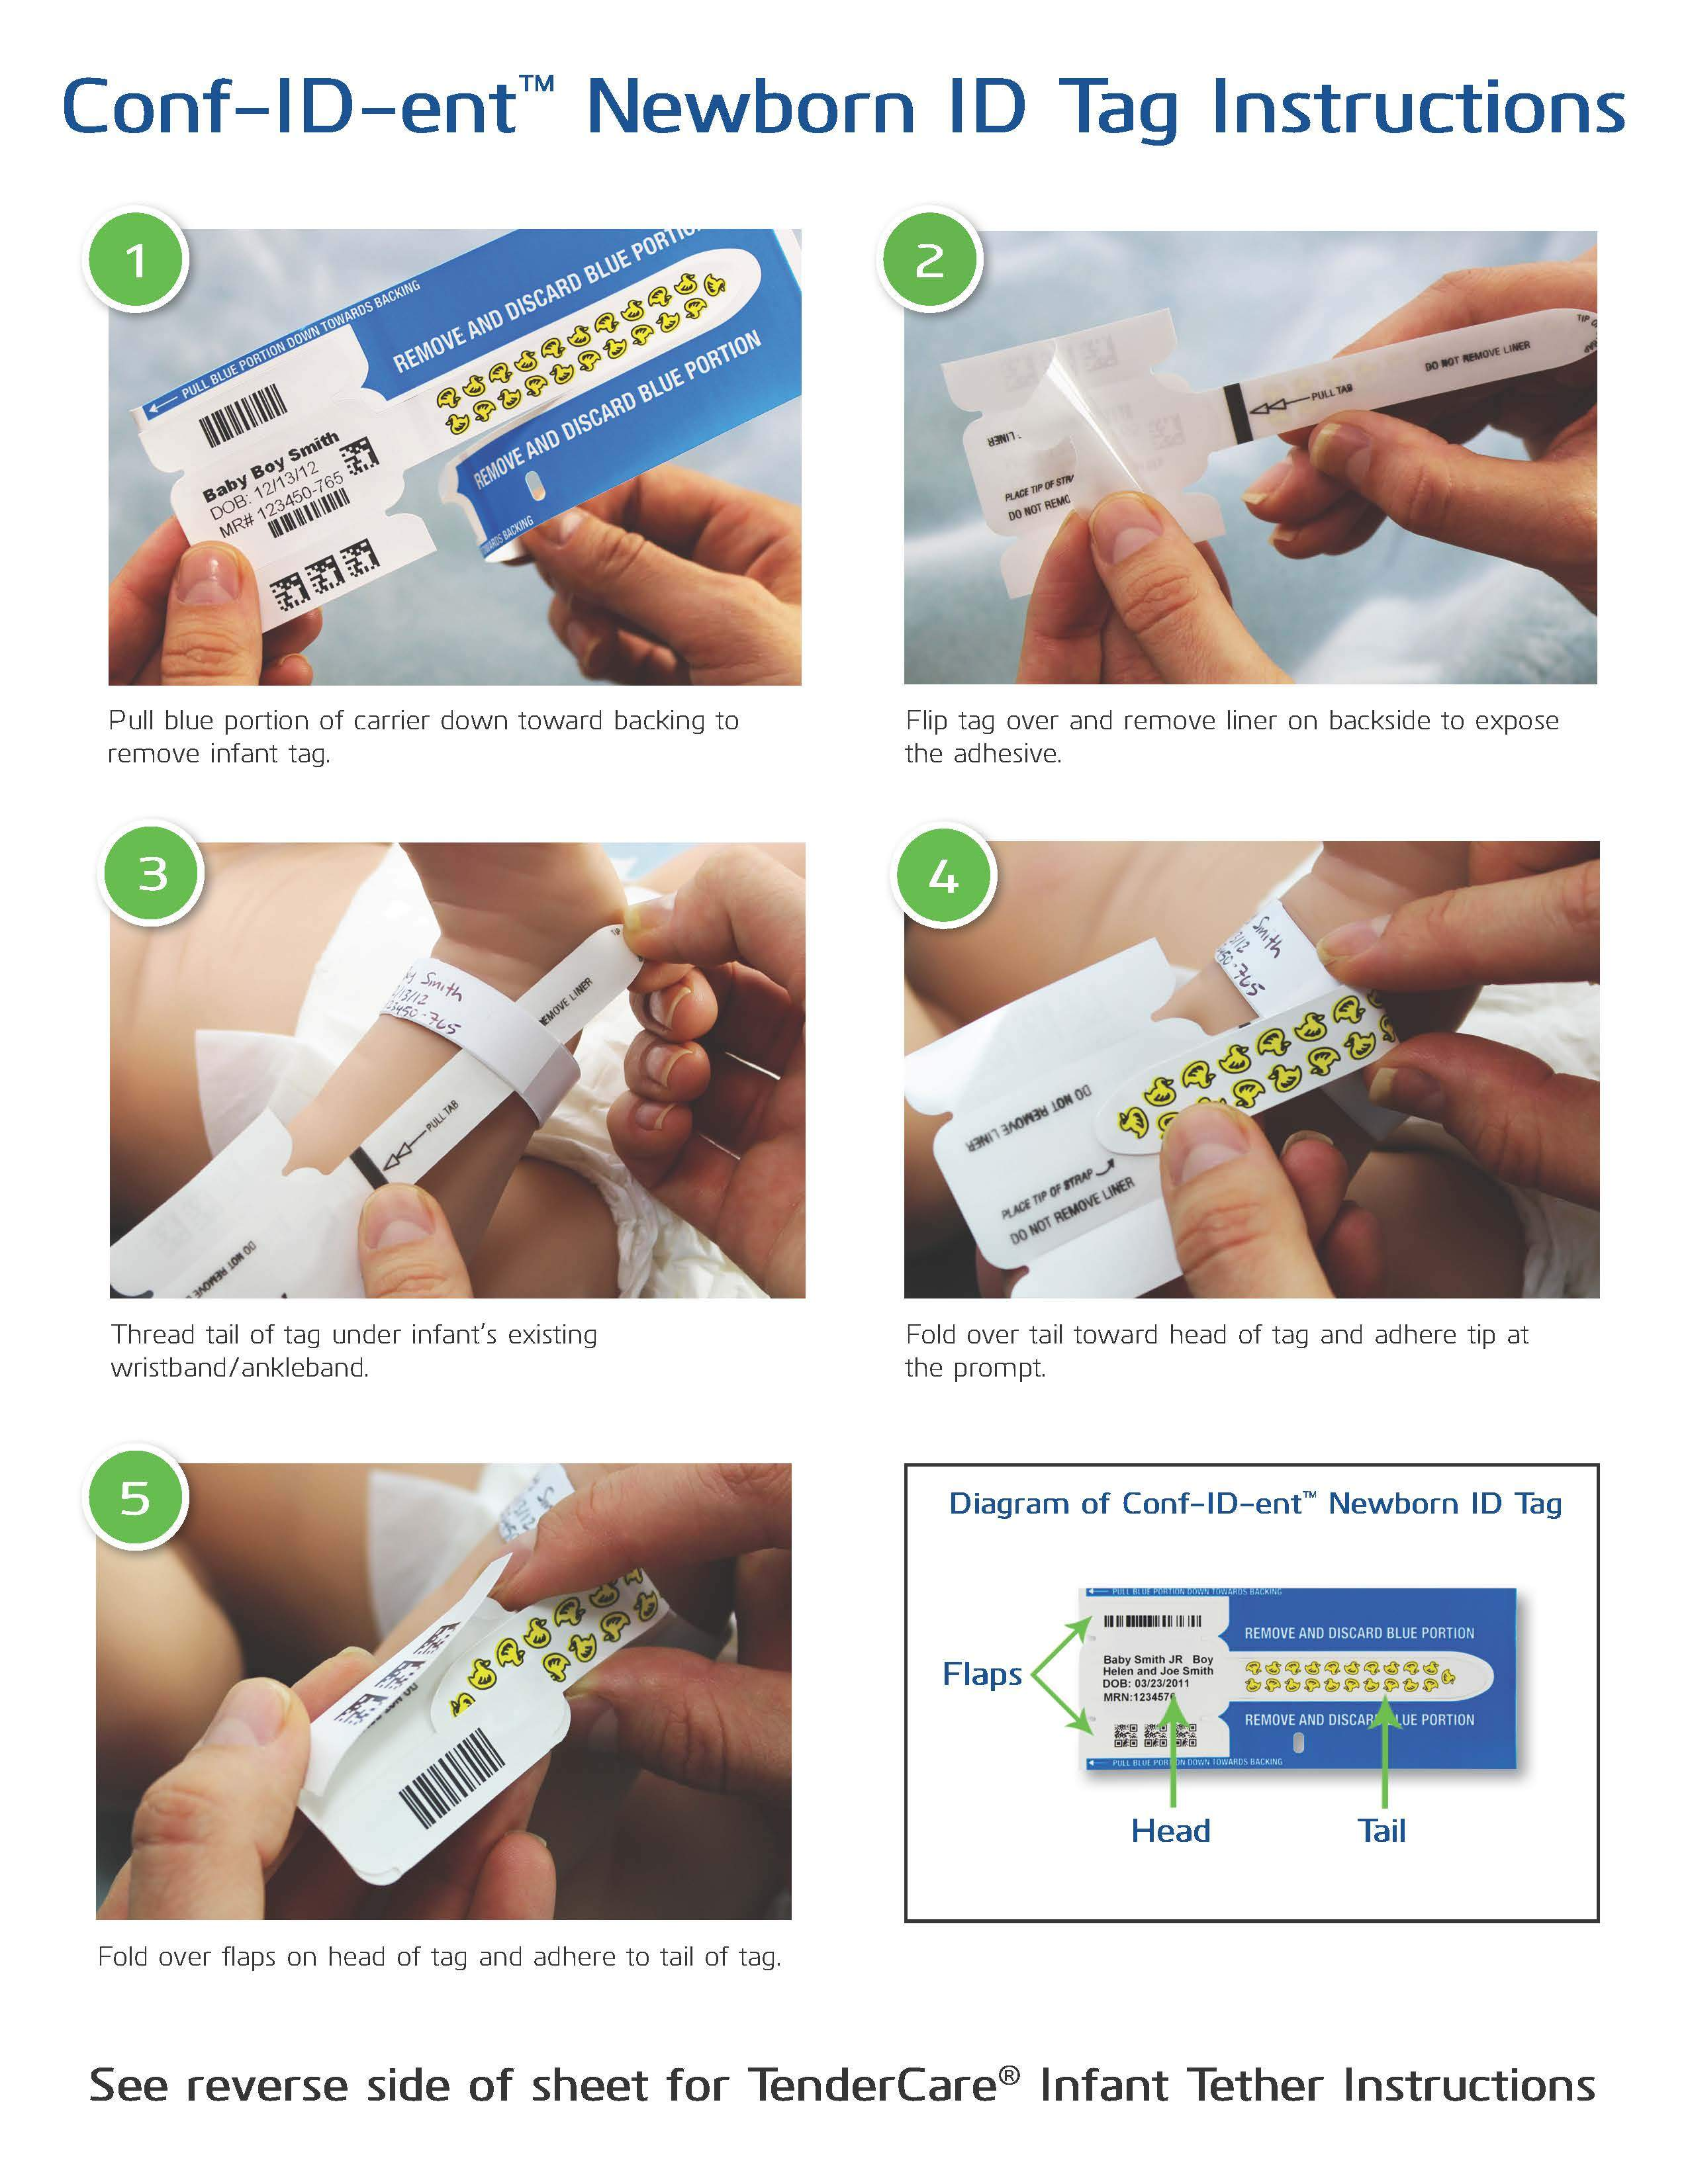 Conf-ID-ent™ Newborn ID Tag & TenderCare® Infant Tether Instruction Sheet